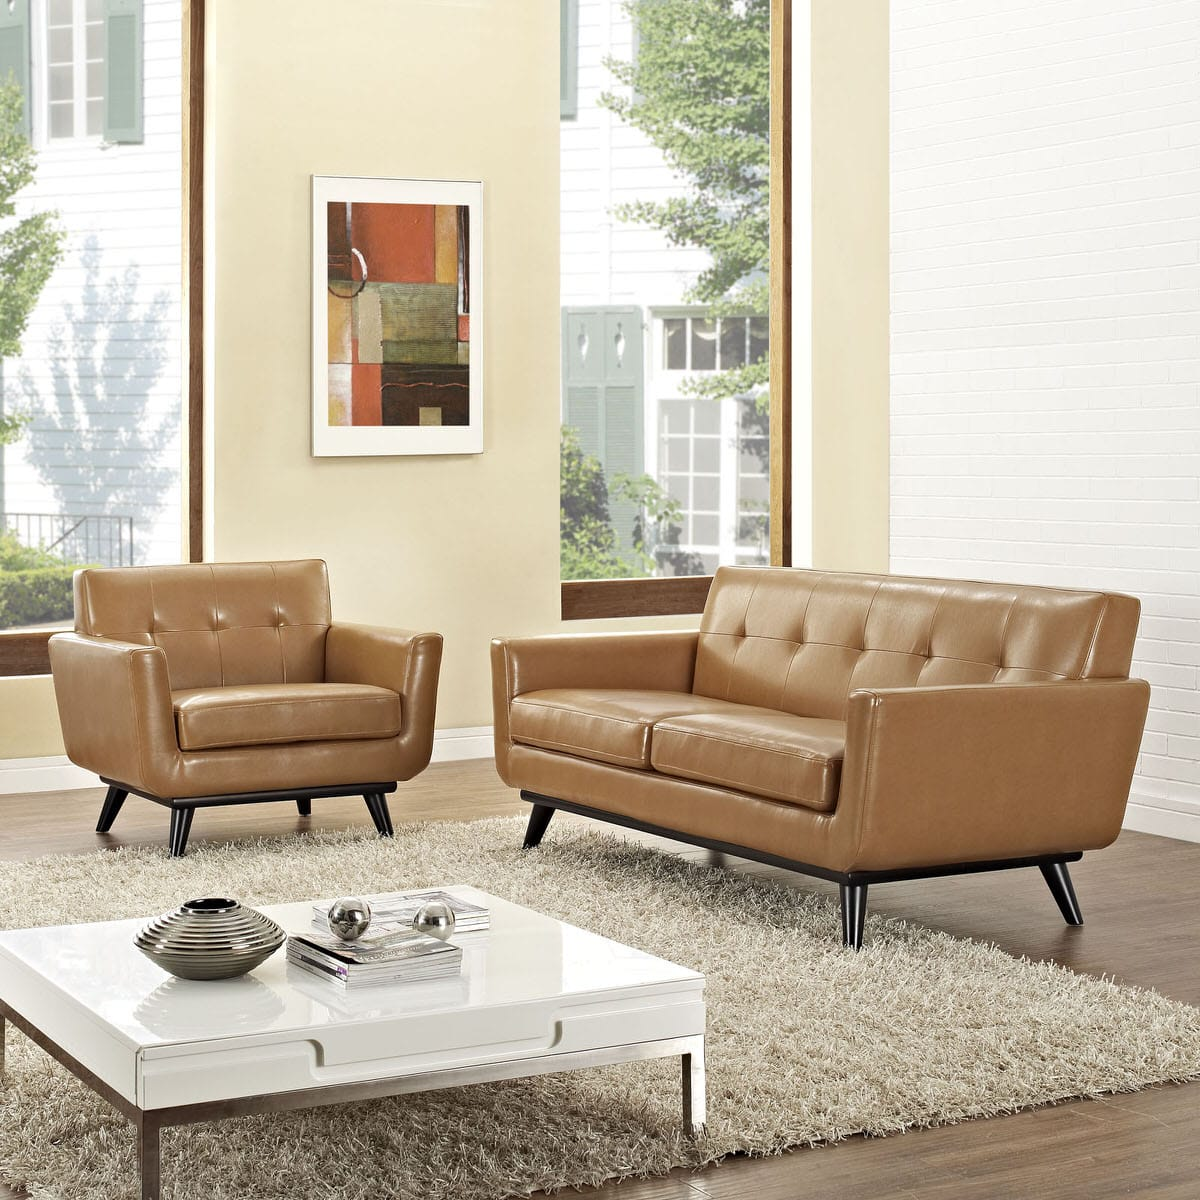 Engage 2 Piece Leather Living Room Set Tan by Modern Living